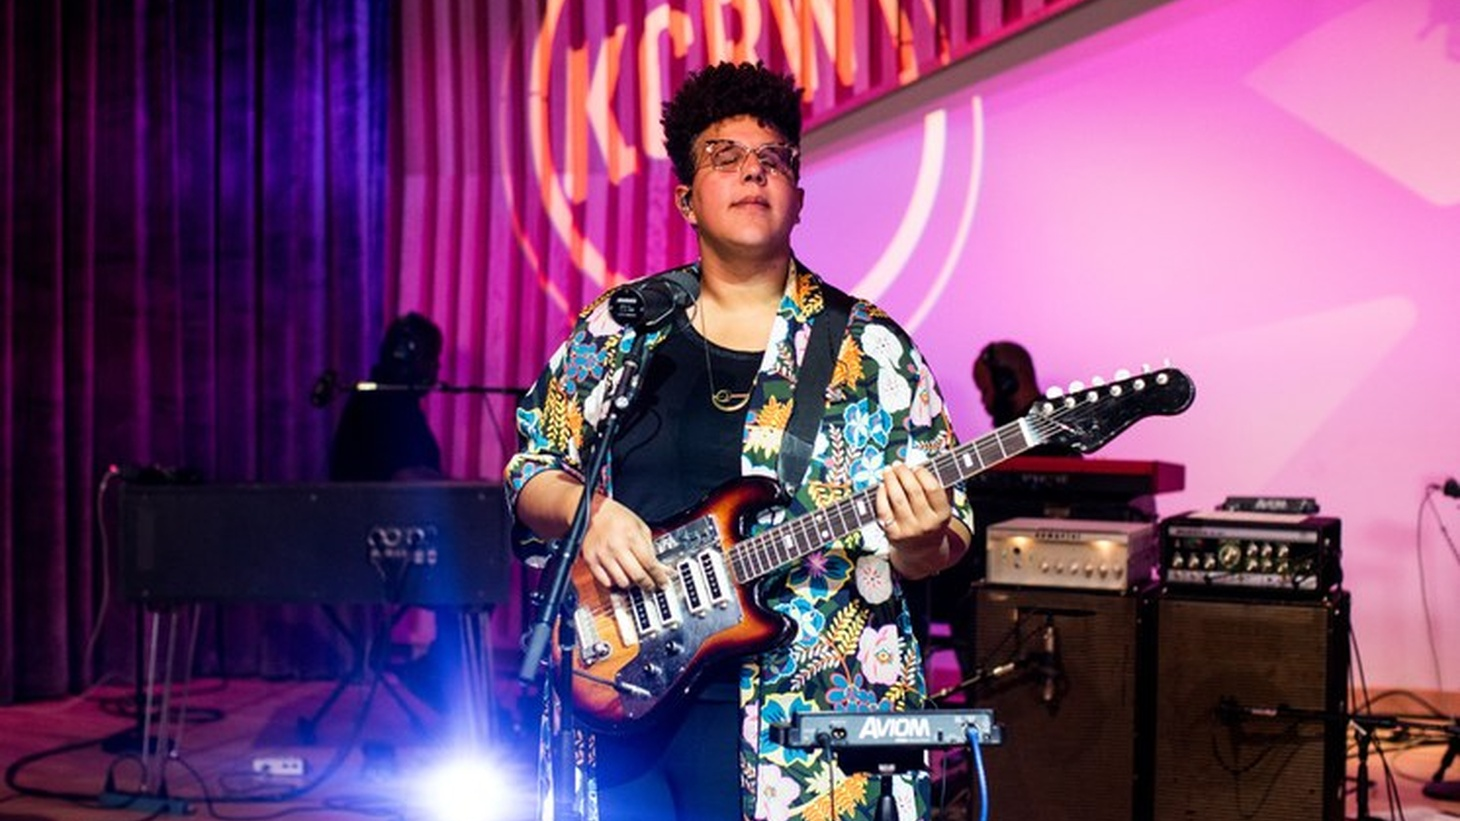 Brittany Howard performs at KCRW in October 2019.